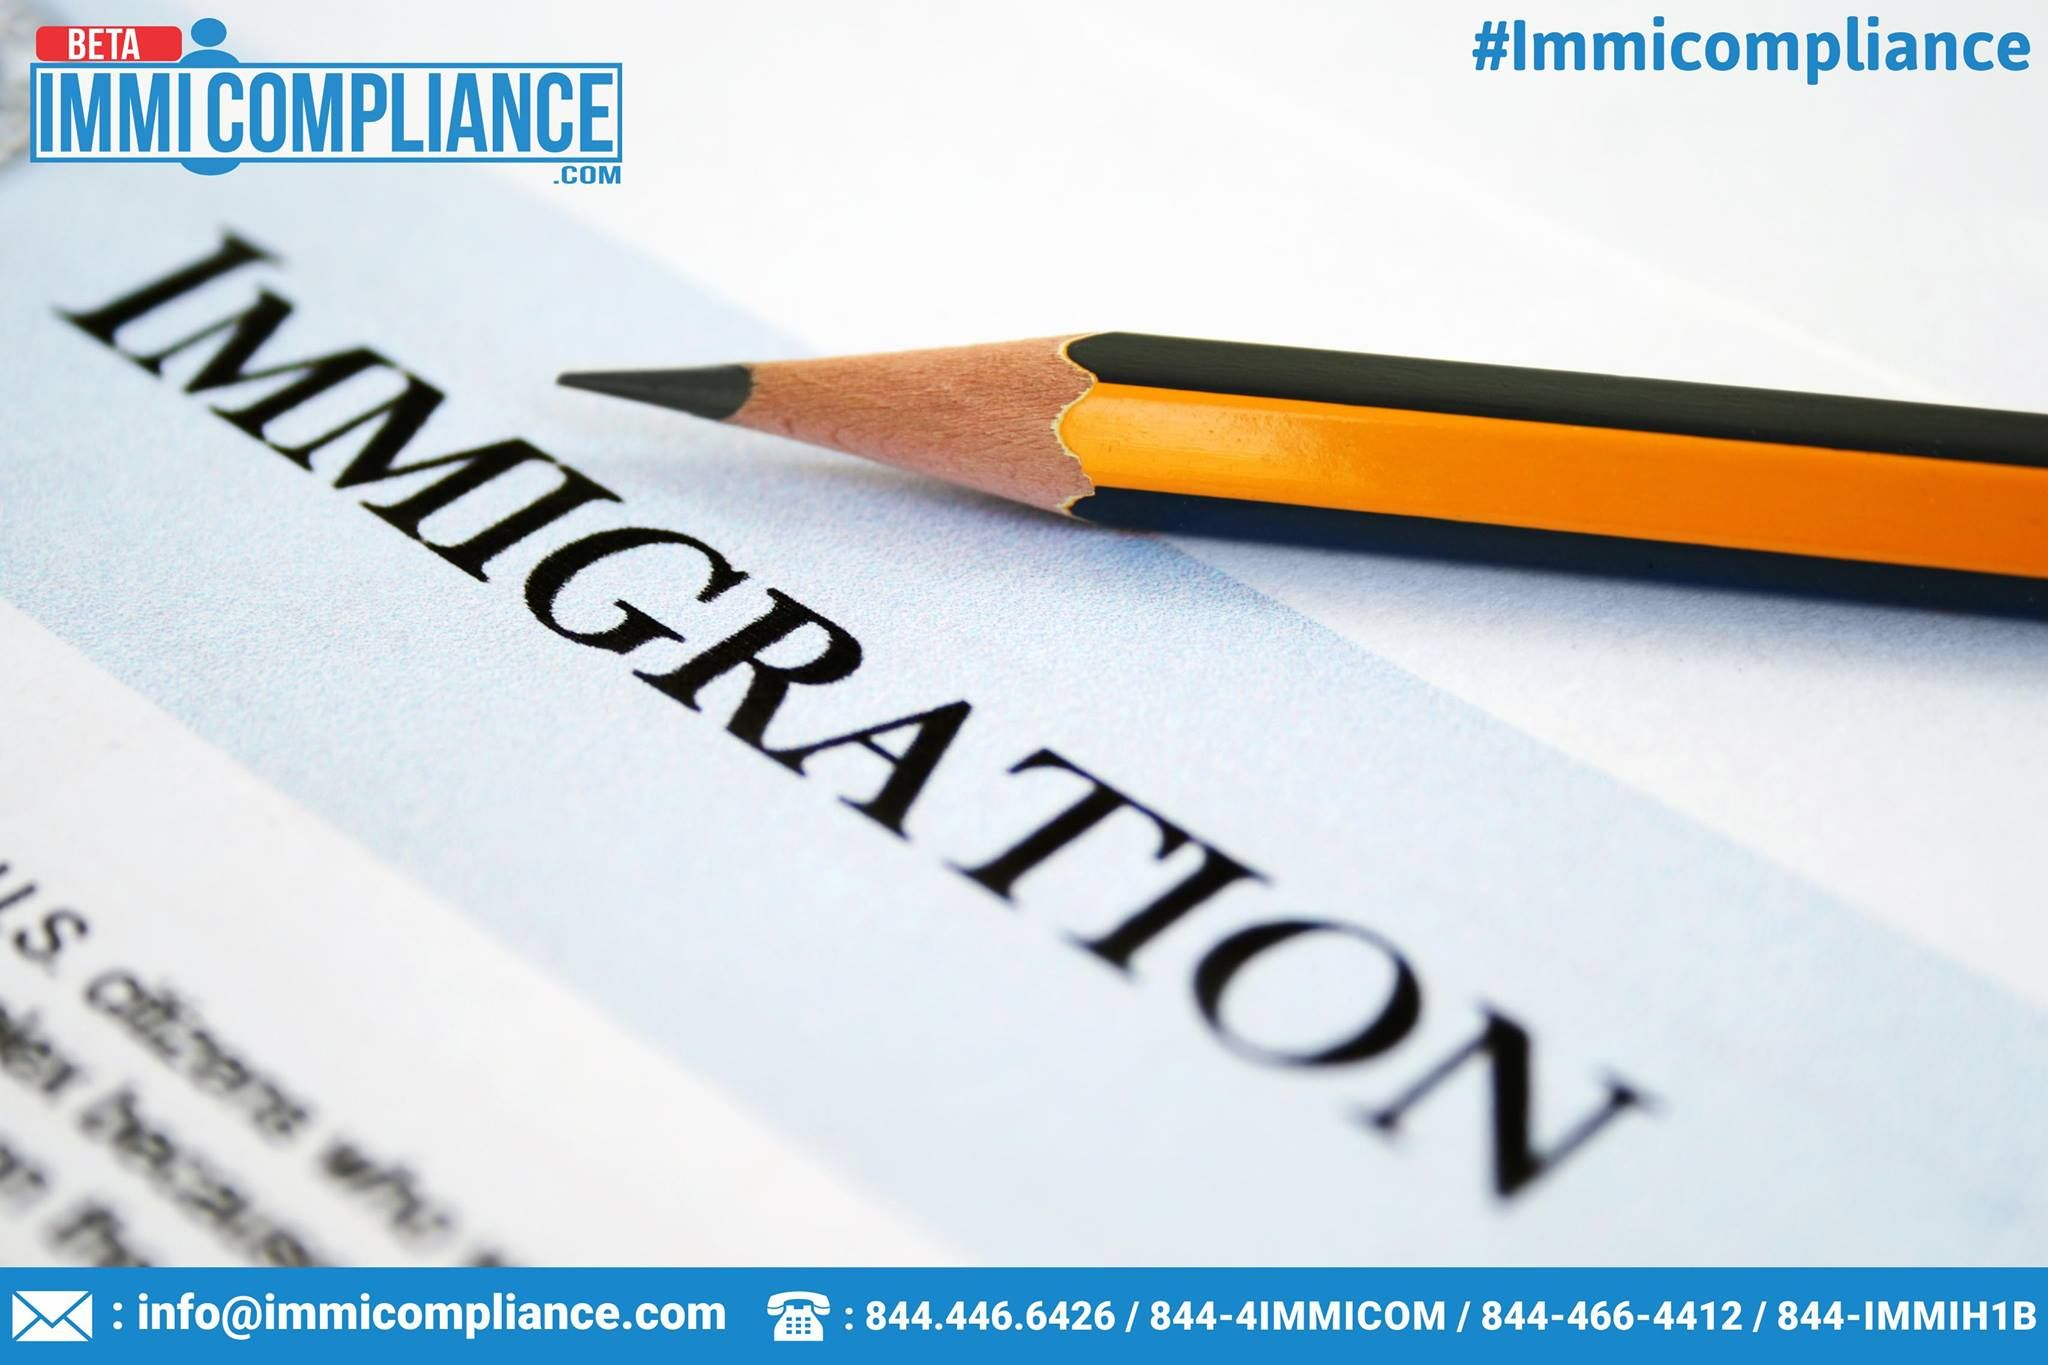 Make Your Immigration Law Practice. http//ht.ly